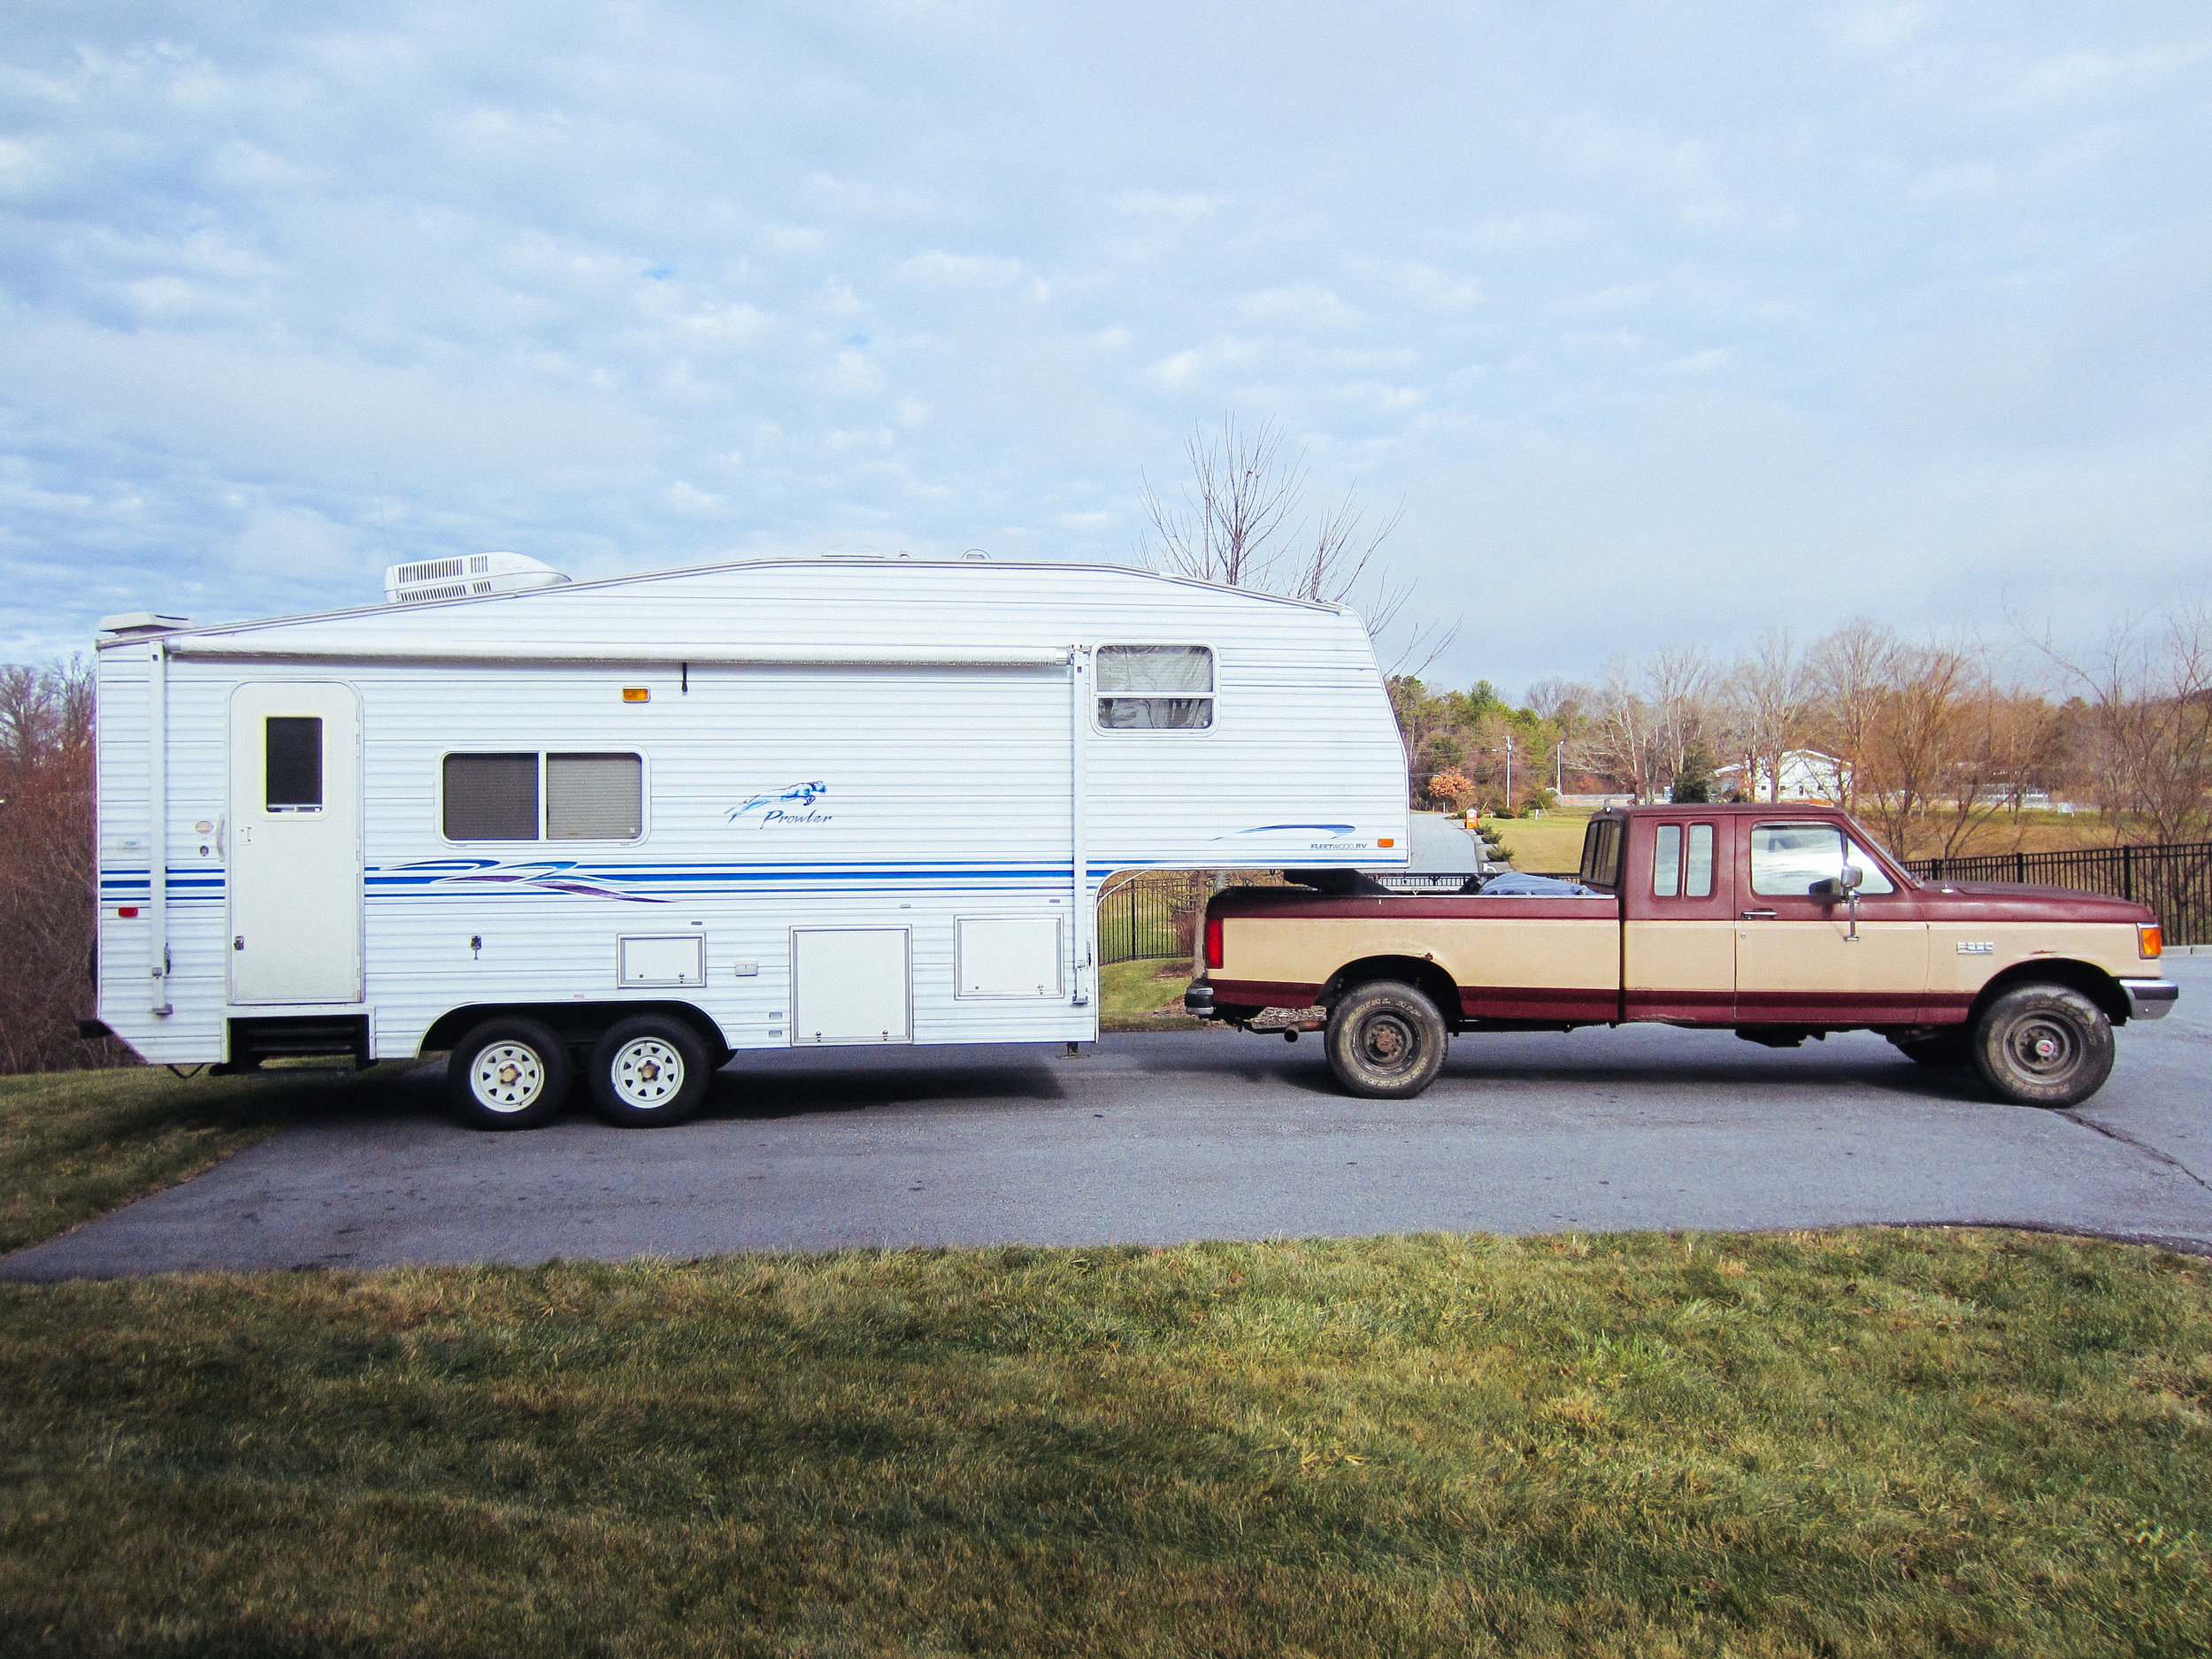 Meet the Fleetwood Prowler. This was the original truck we hit the road with.